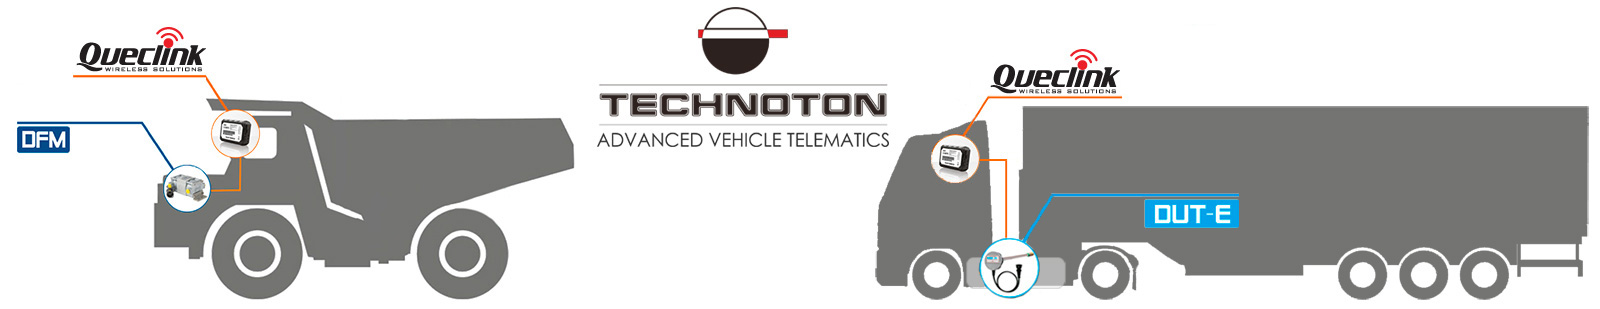 Technoton fuel level sensors and fuel flow meters with Queclink GPS trackers